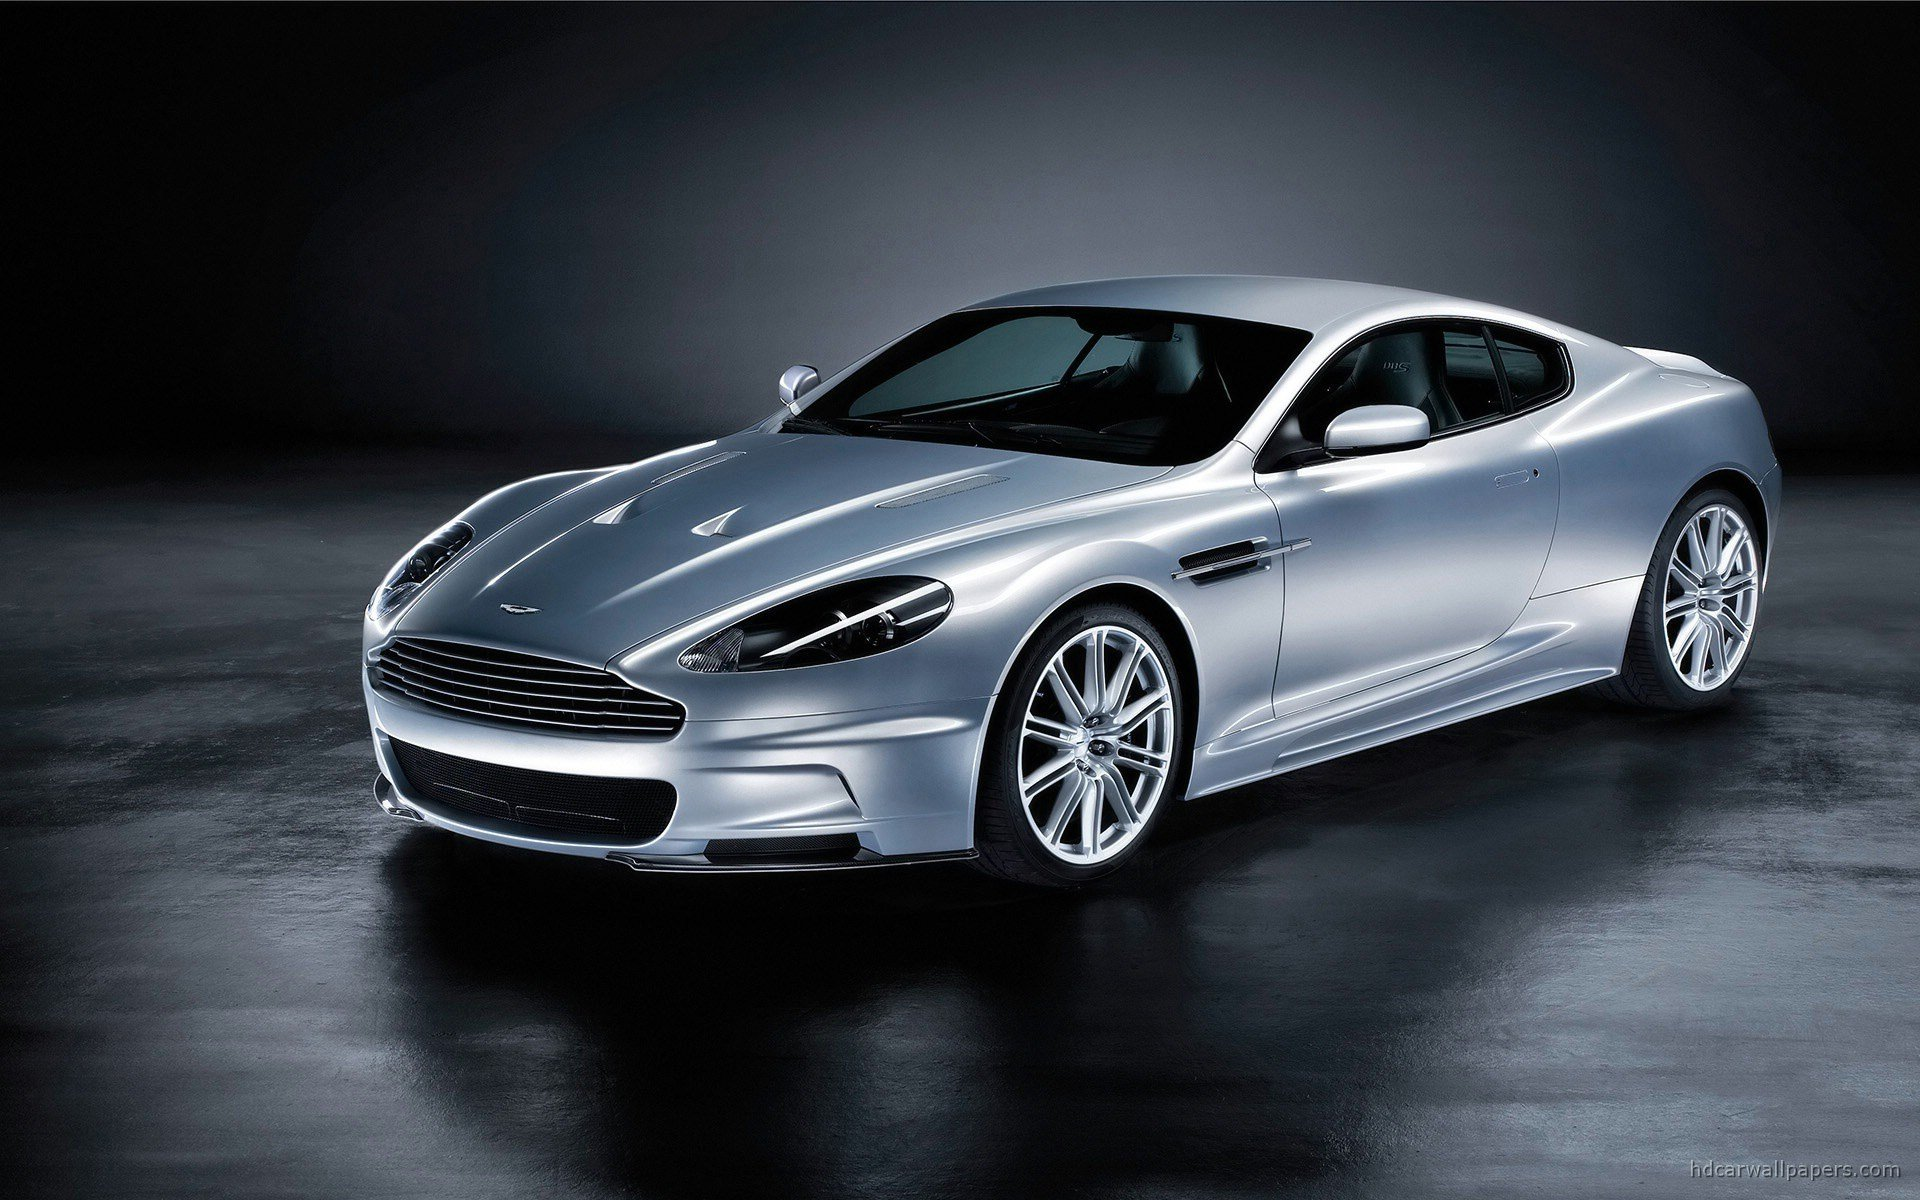 Latest Aston Martin Dbs Widescreen Wallpaper Hd Car Wallpapers Free Download